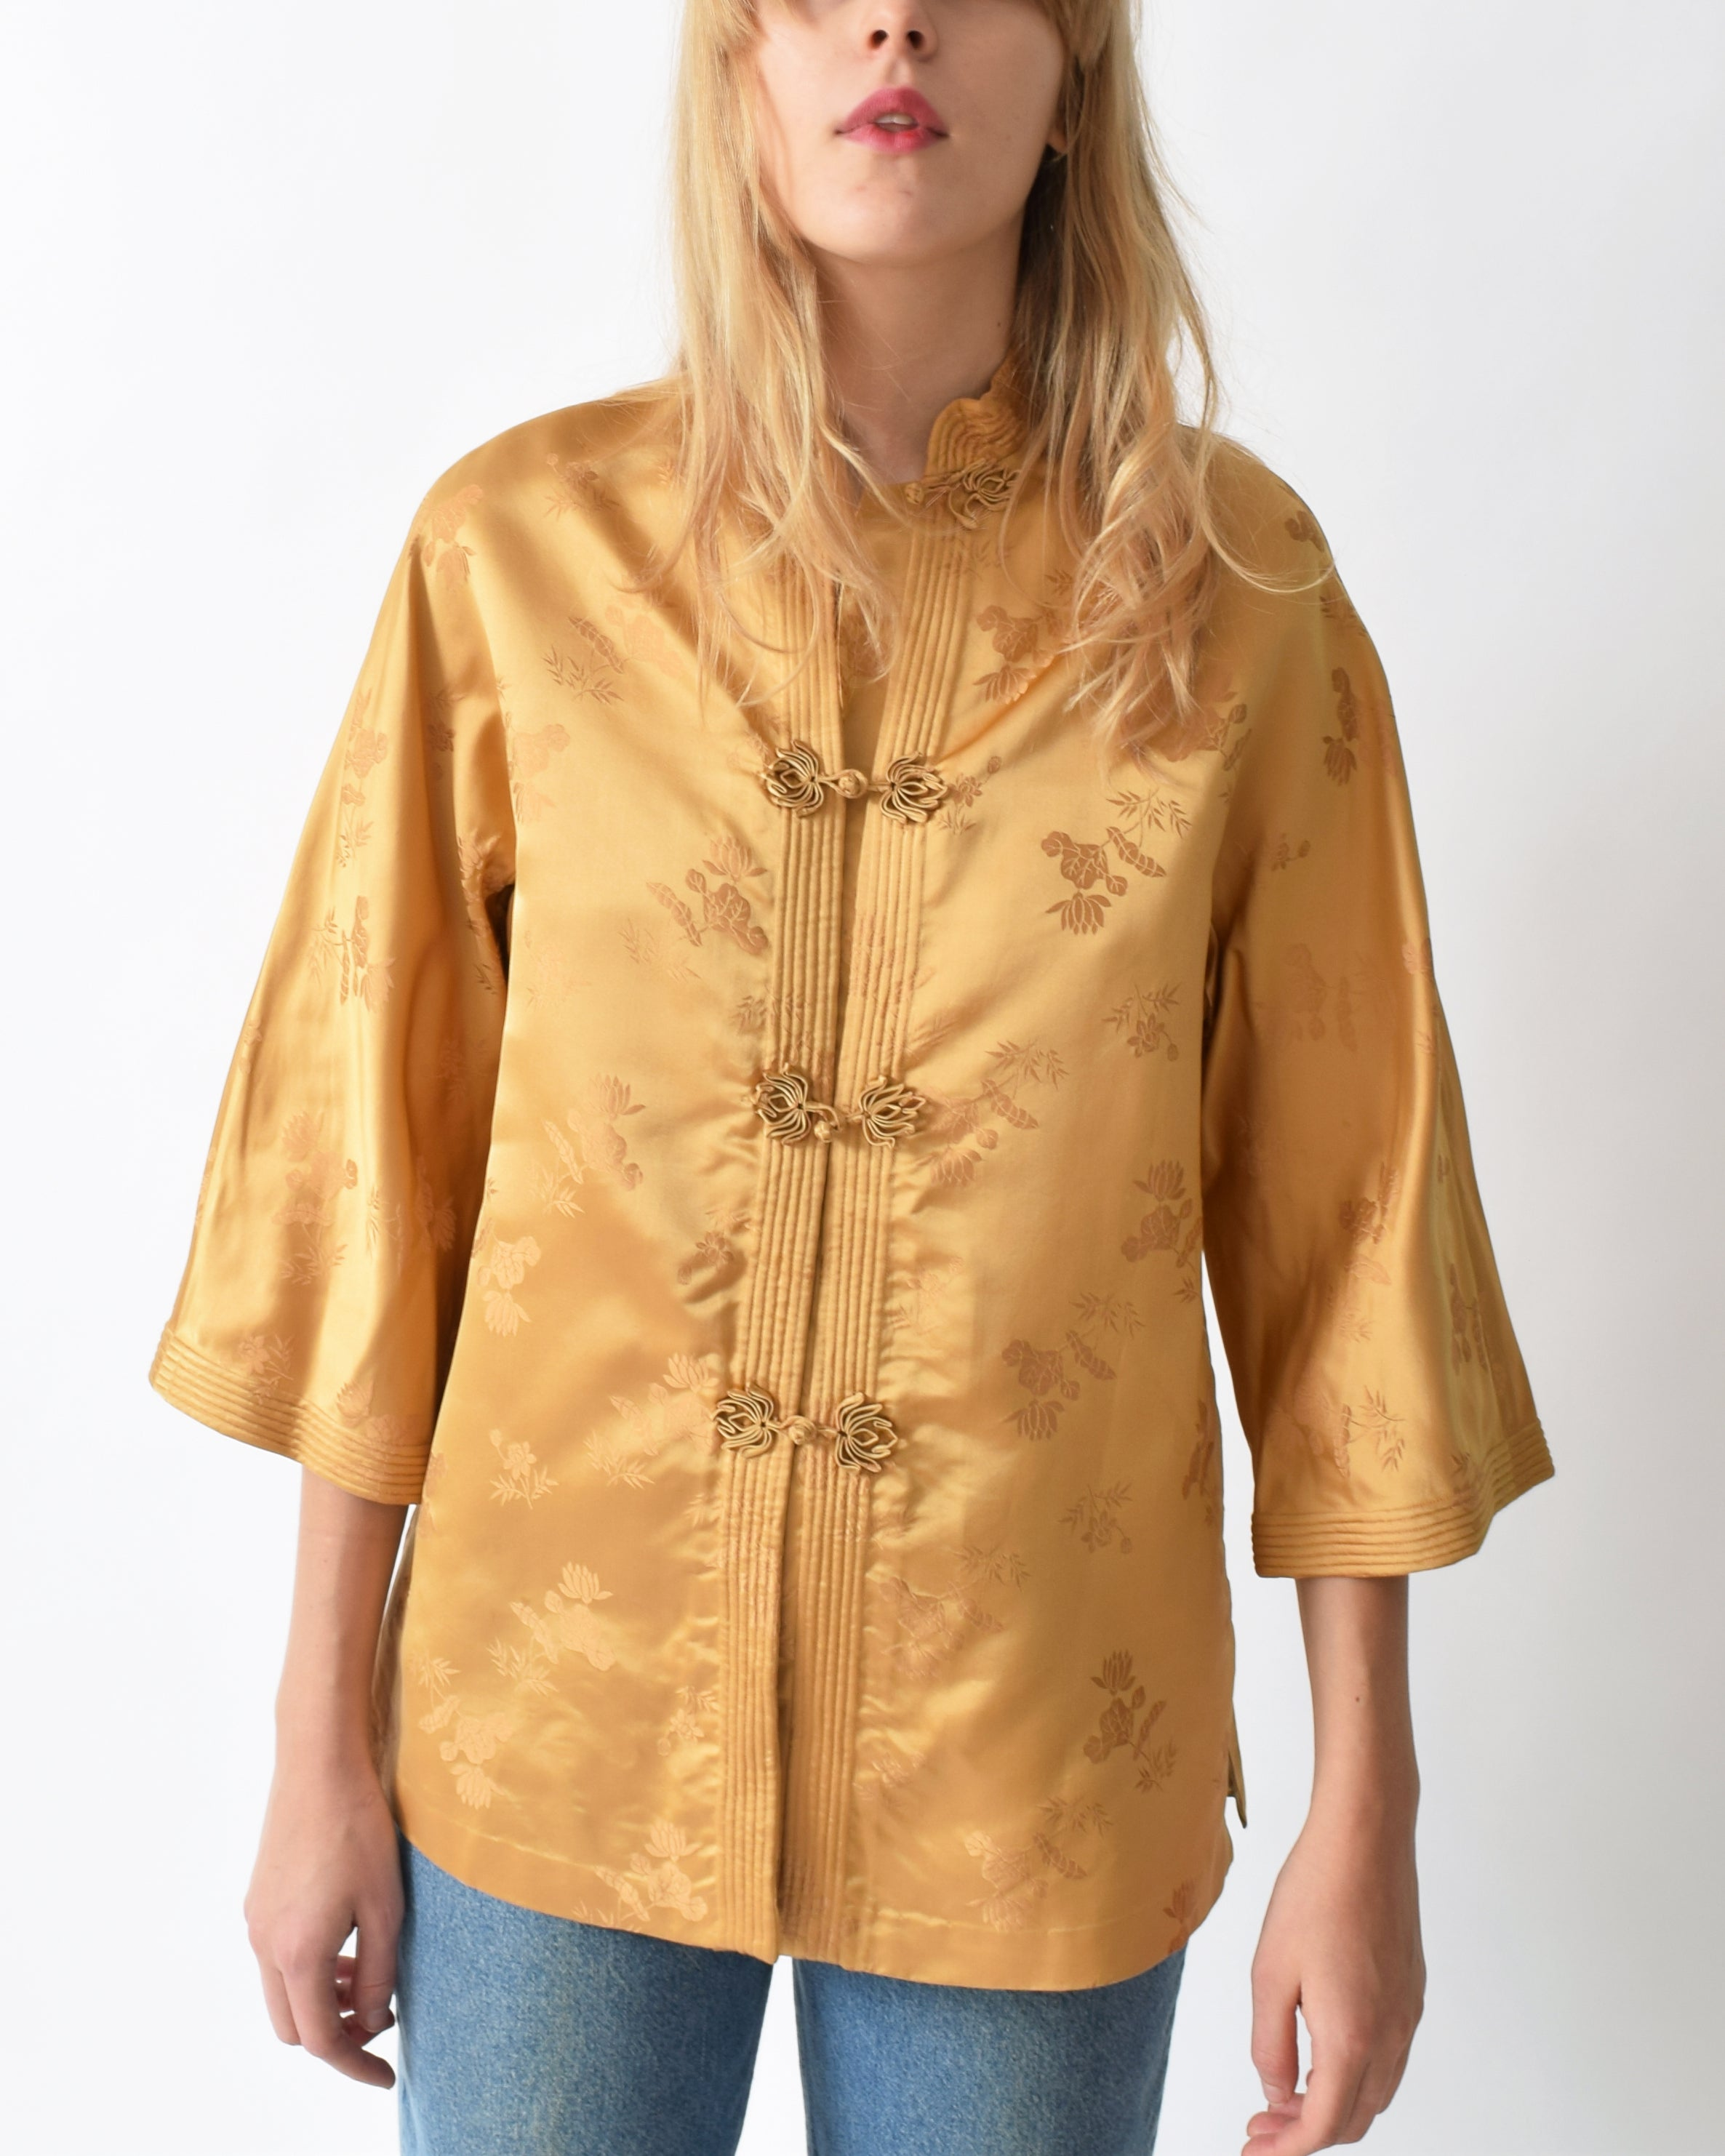 Vintage 1960s Damask Chinese Blouse